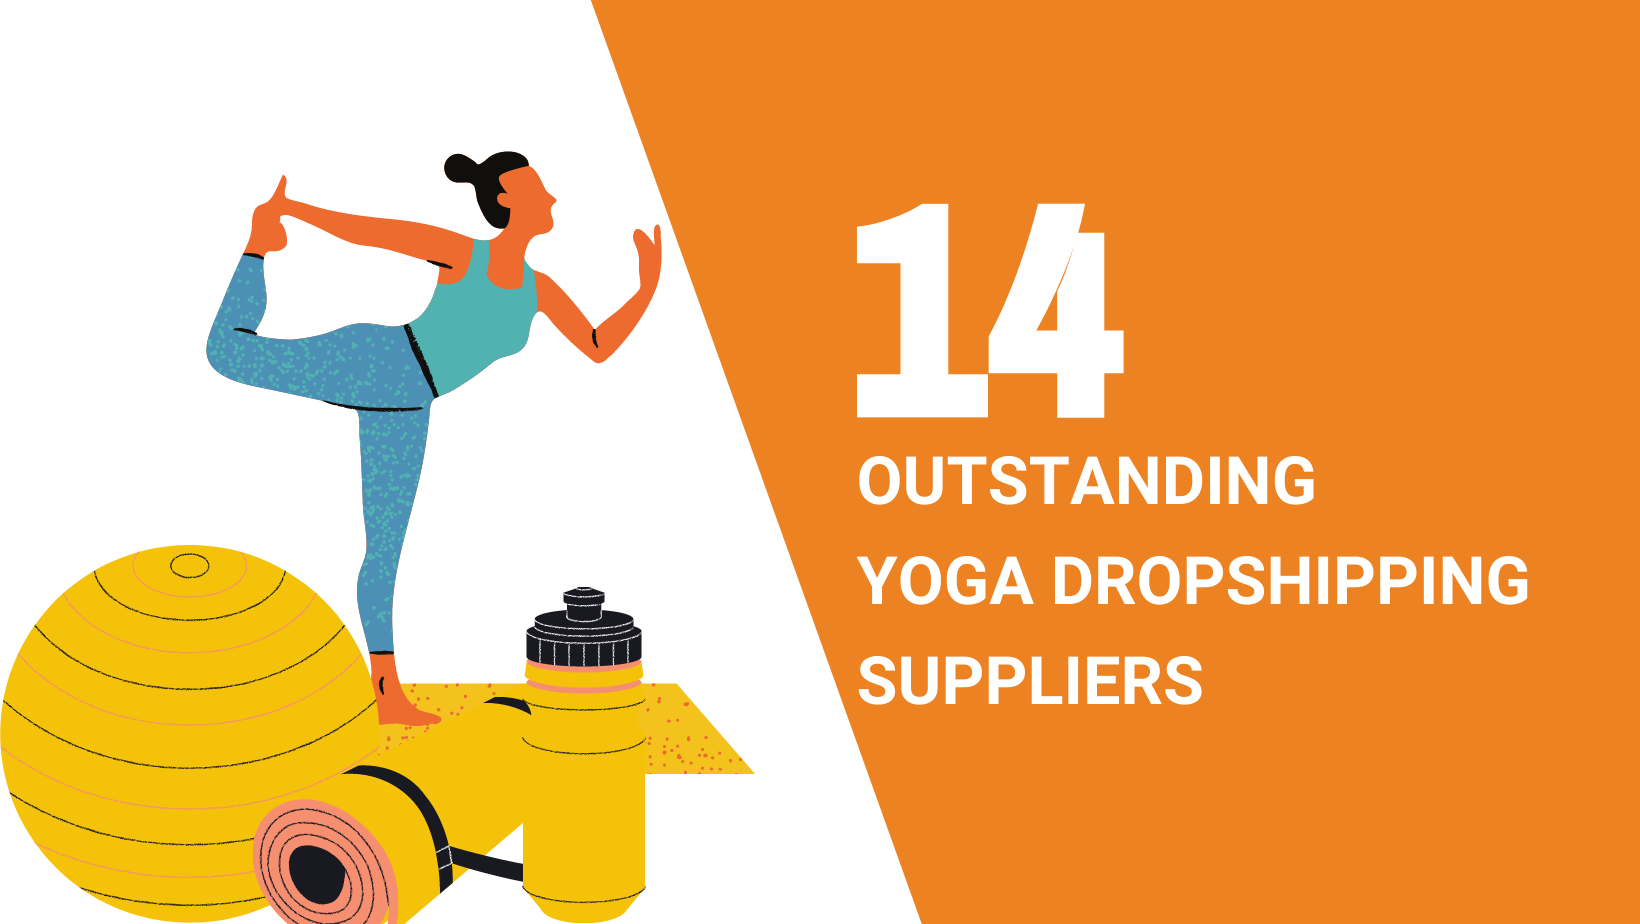 14 OUTSTANDING YOGA DROPSHIPPING SUPPLIERS